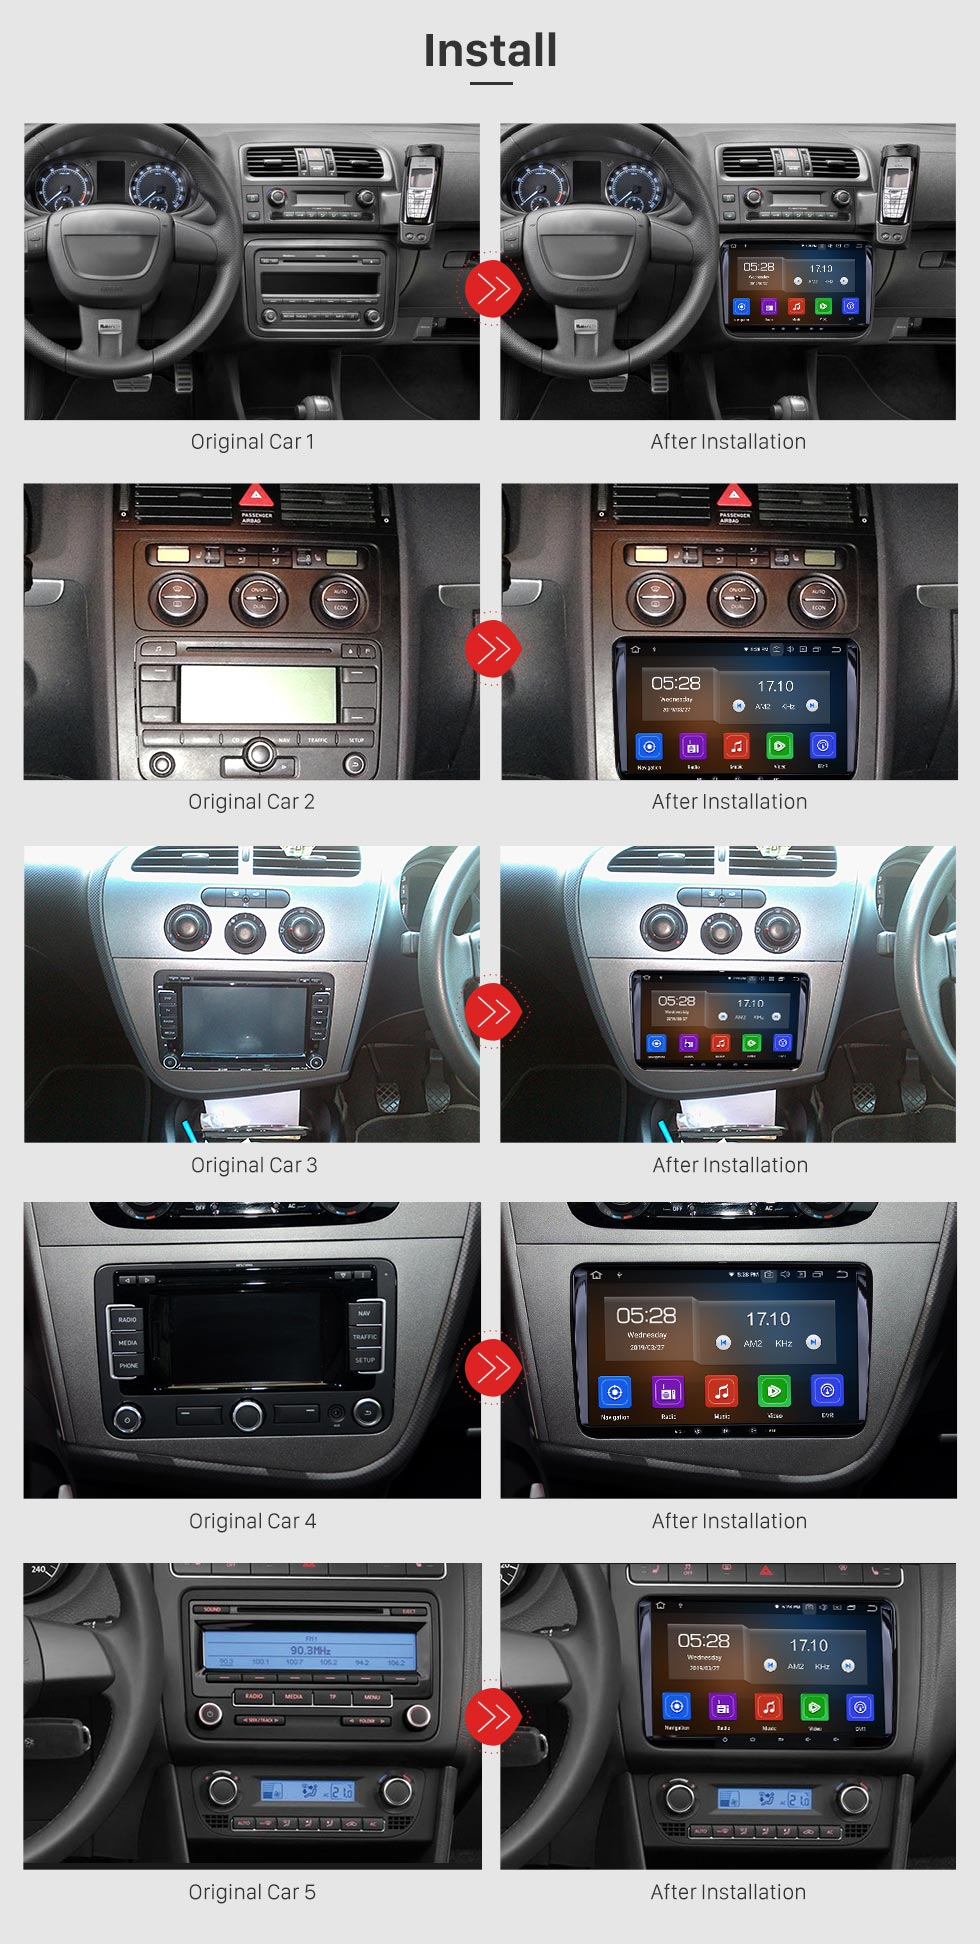 Seicane 2010 2011 Seat AlhambraAndroid 9.0 GPS Navigation Car DVD Player with 3G WiFi Mirror Link Backup Camera OBD2 DVR HD touch Screen Steering wheel control Bluetooth